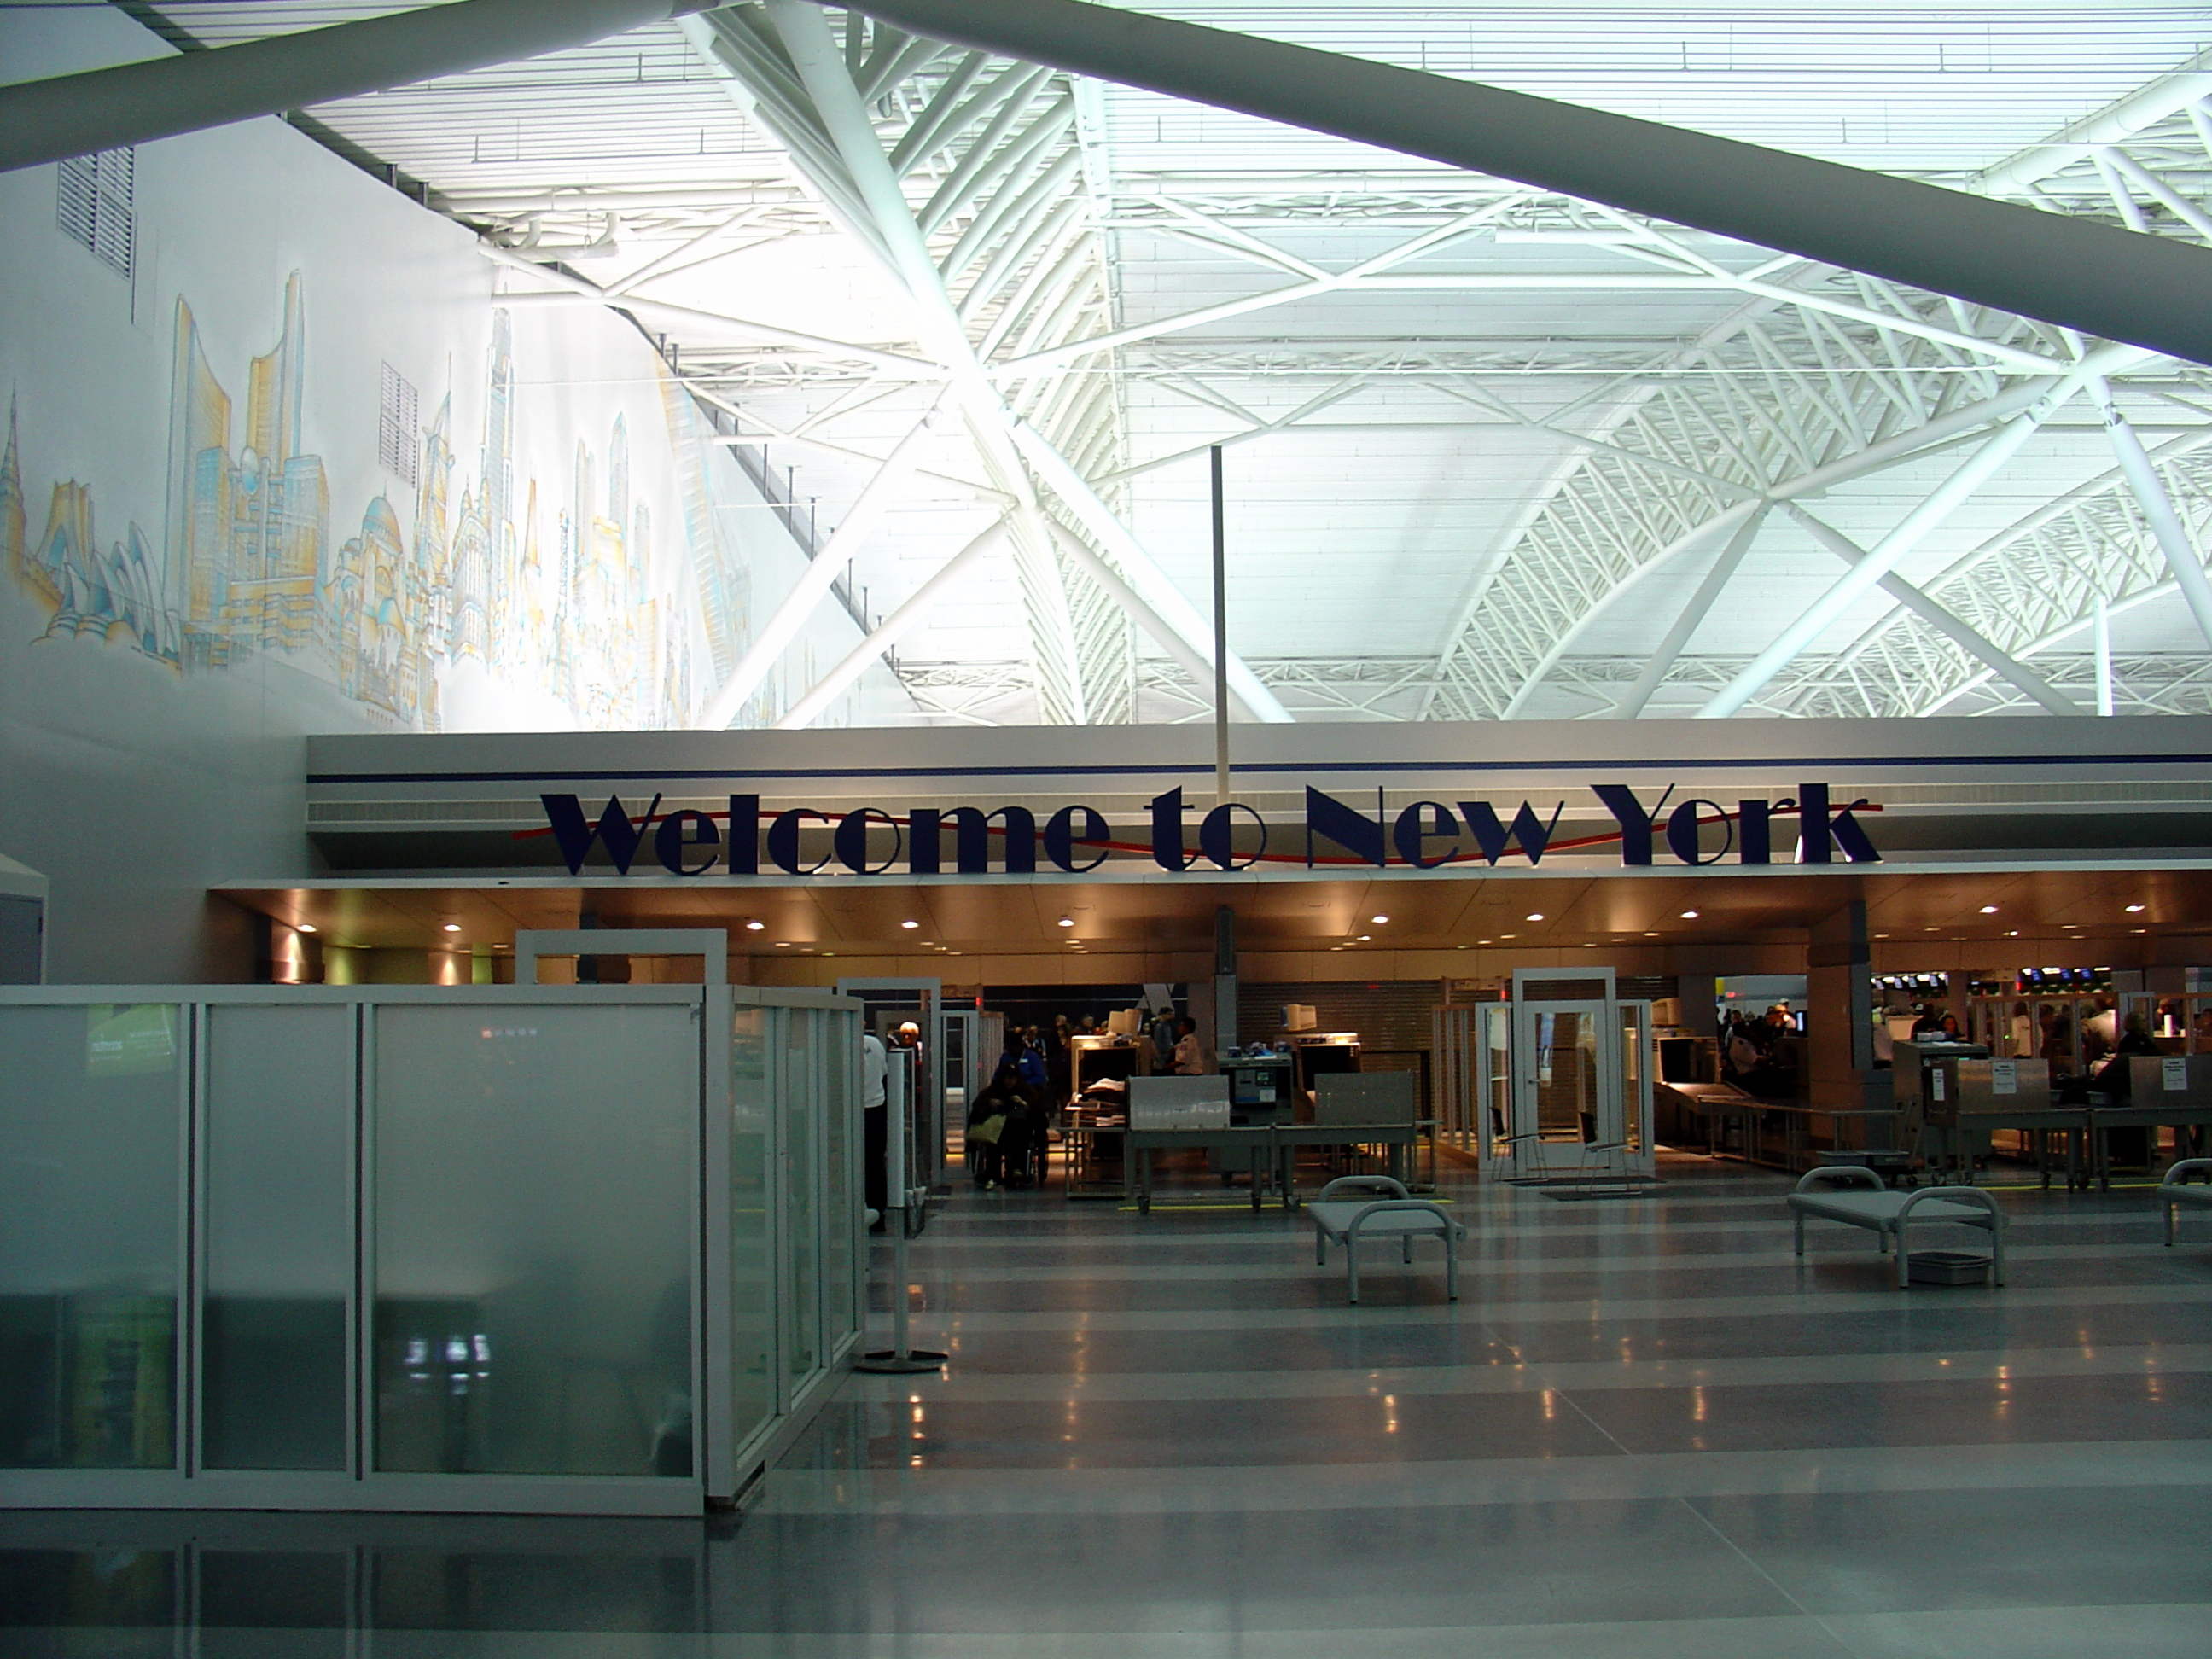 John f kennedy international airport wiki everipedia for Jfk airport hotel inside terminal